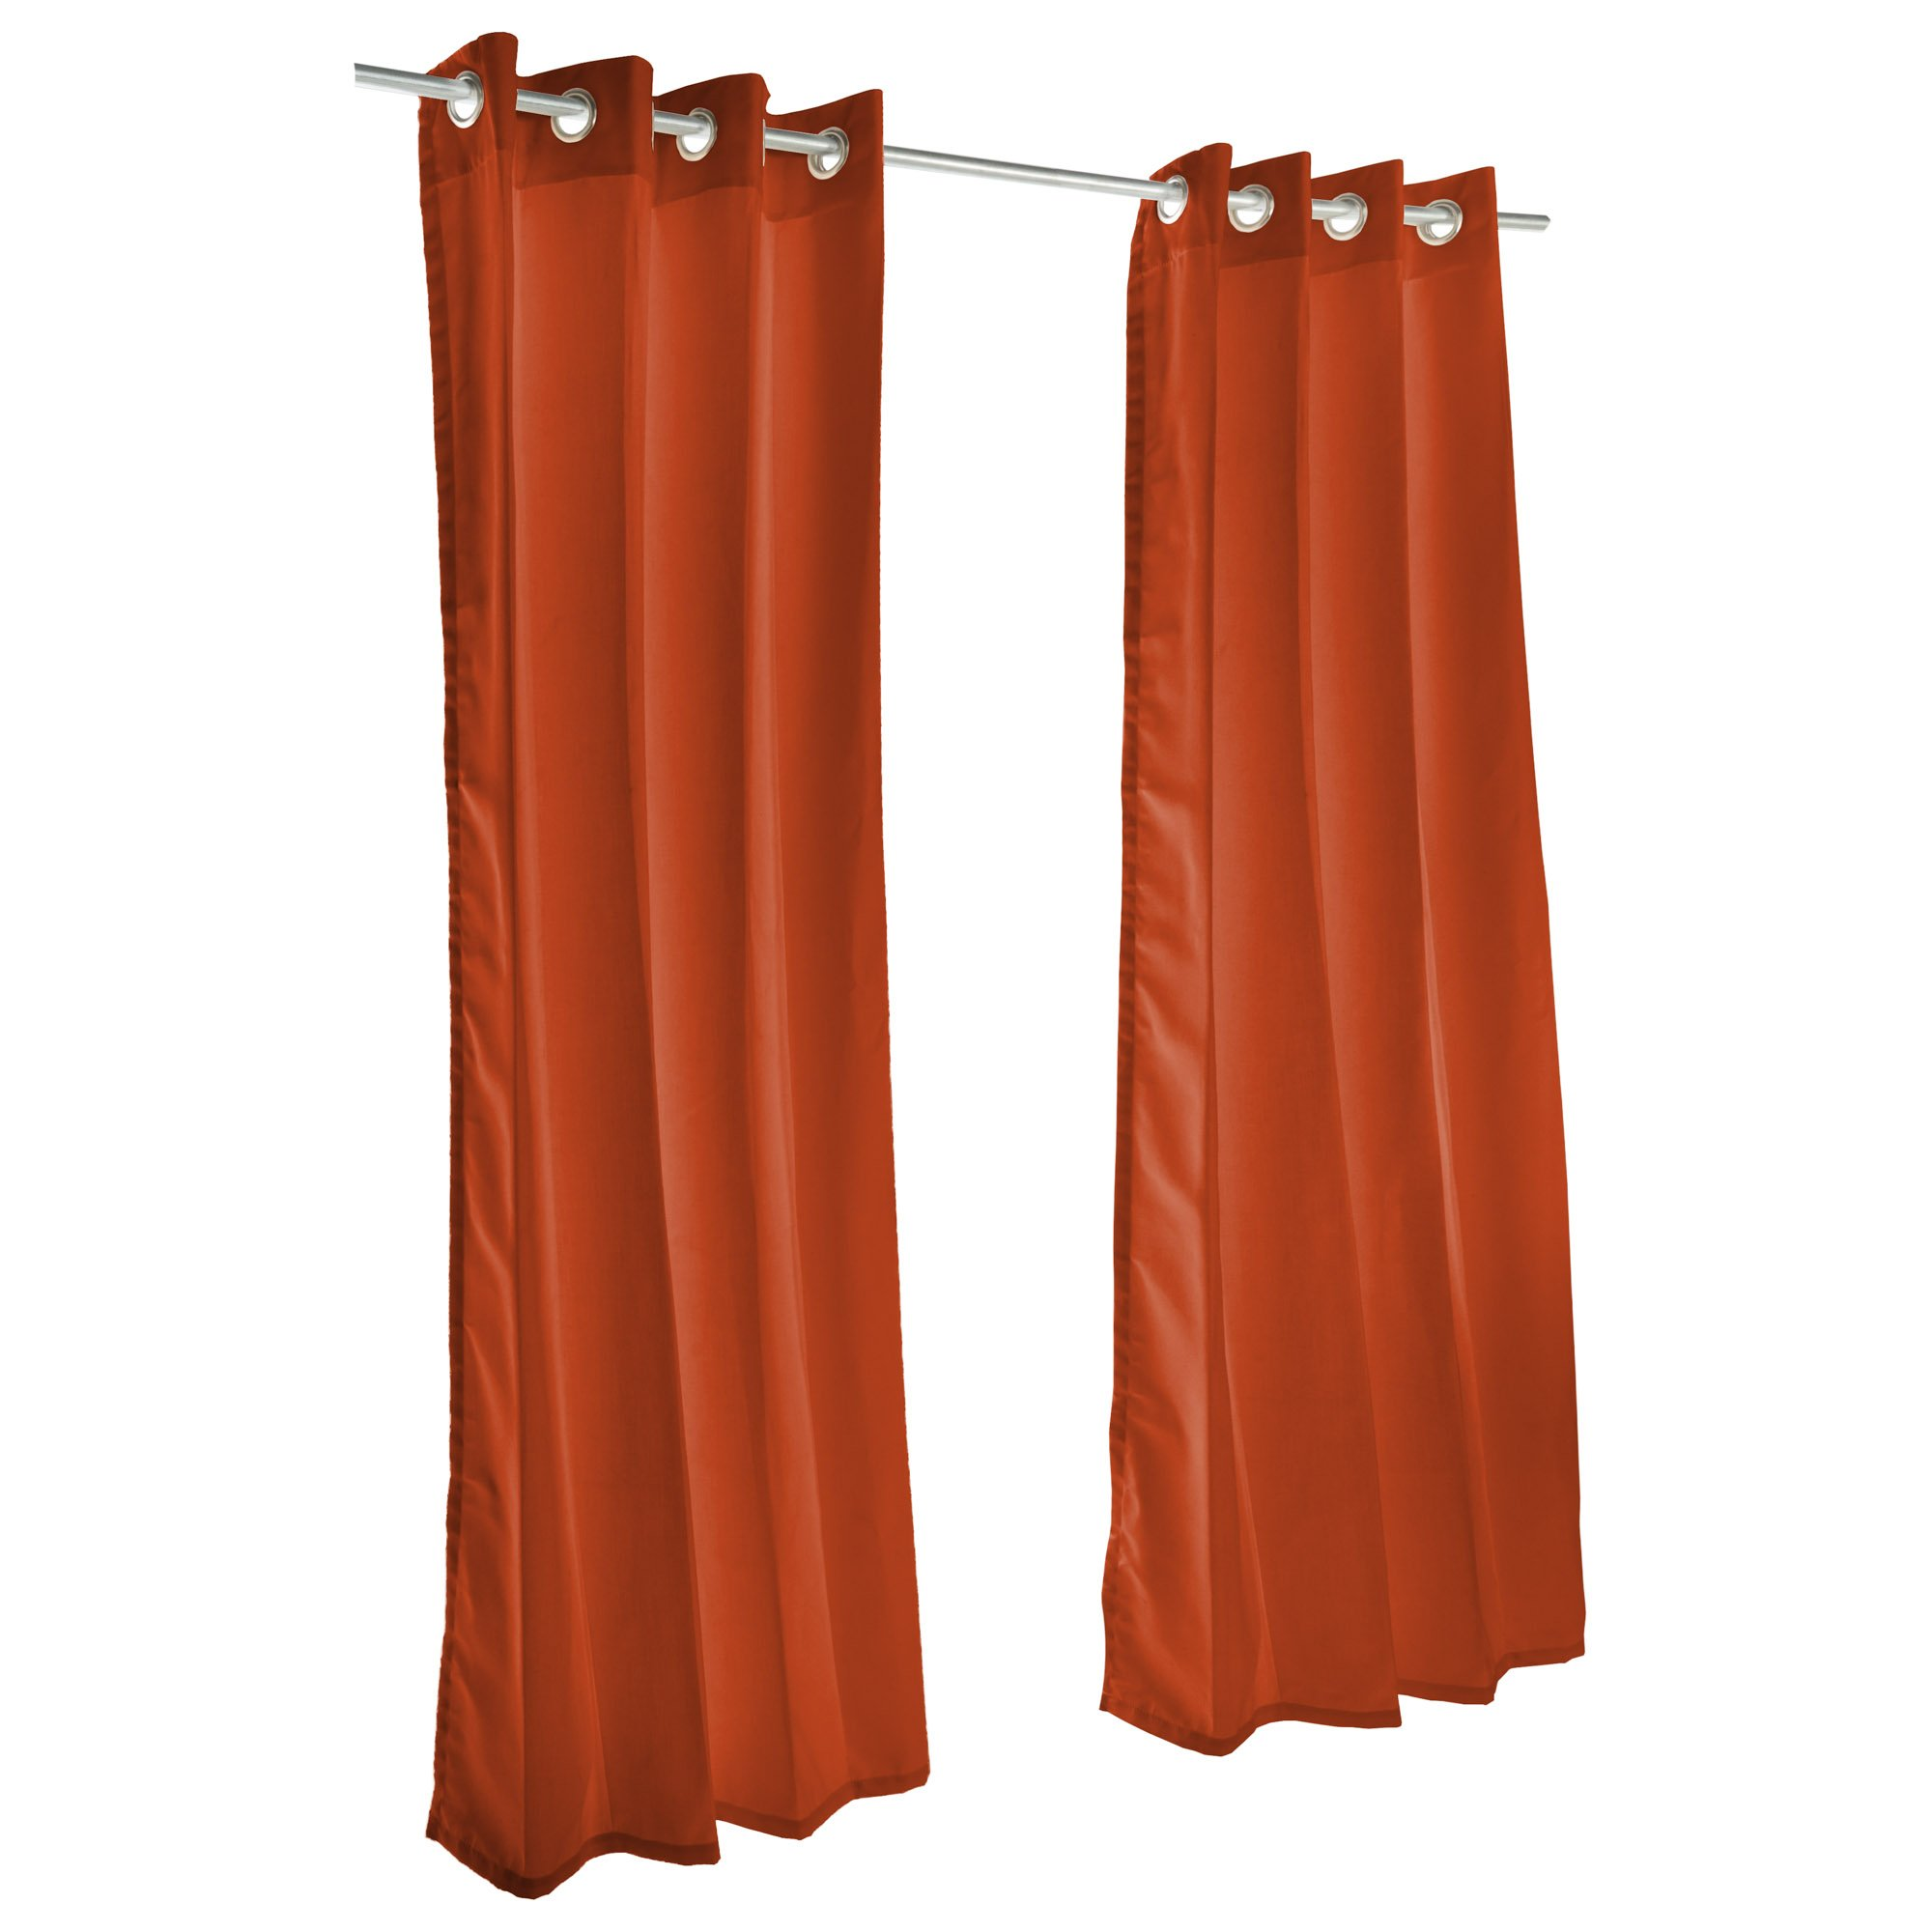 Sunbrella Outdoor Canvas Curtain with Grommets by Sunbrella